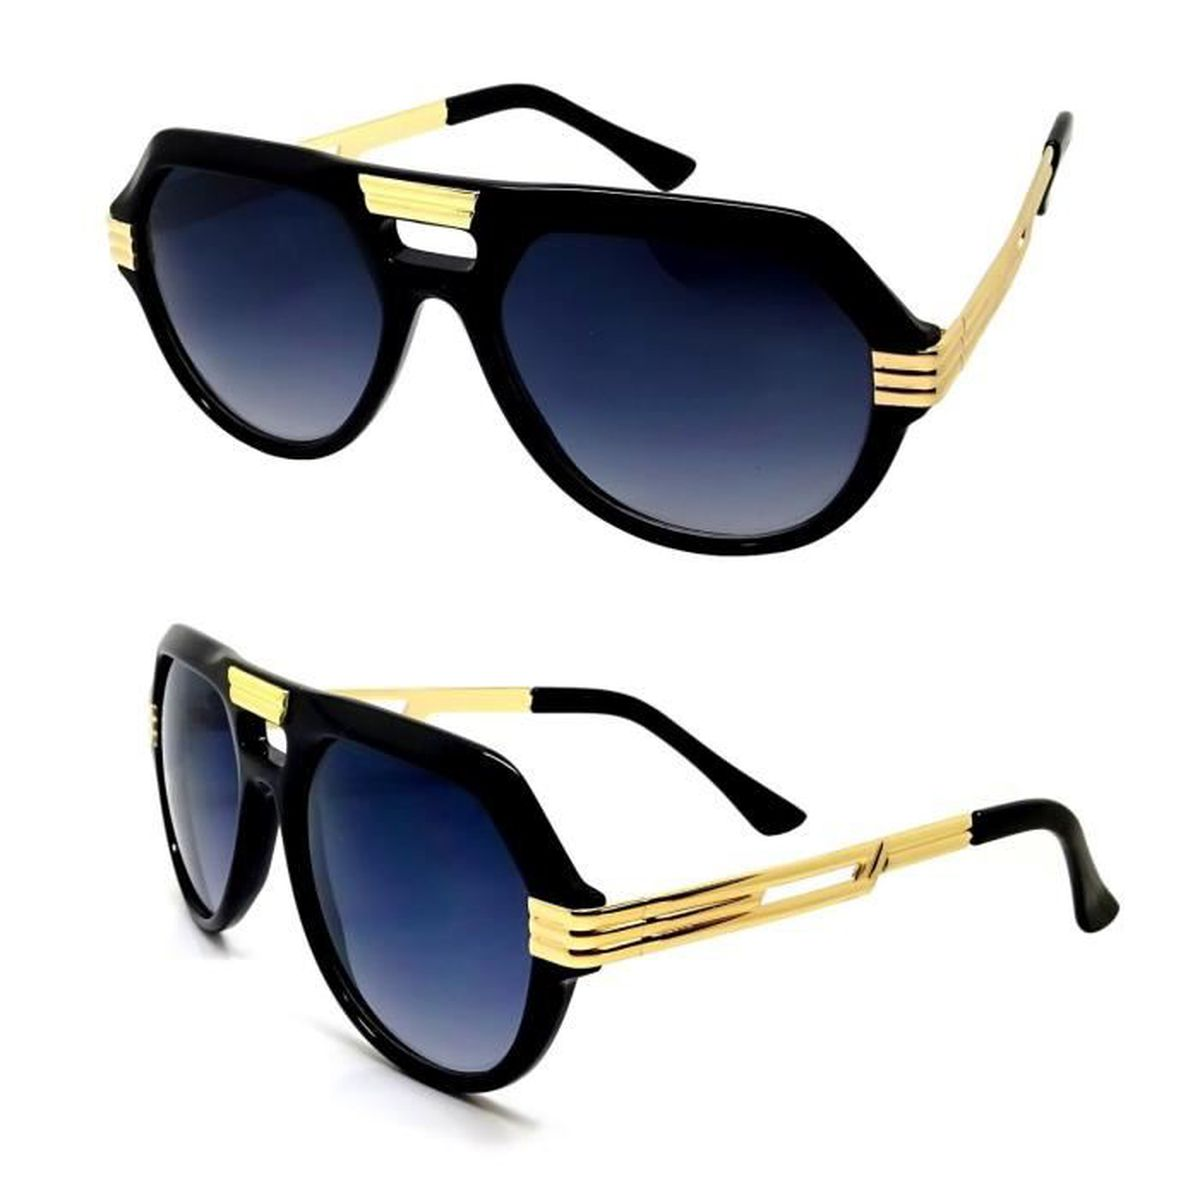 1088eccb20630 LUNETTES SOLEIL HOMME FEMME STREETWEAR LUXE PILOTE AVIATOR GOLD OR ...